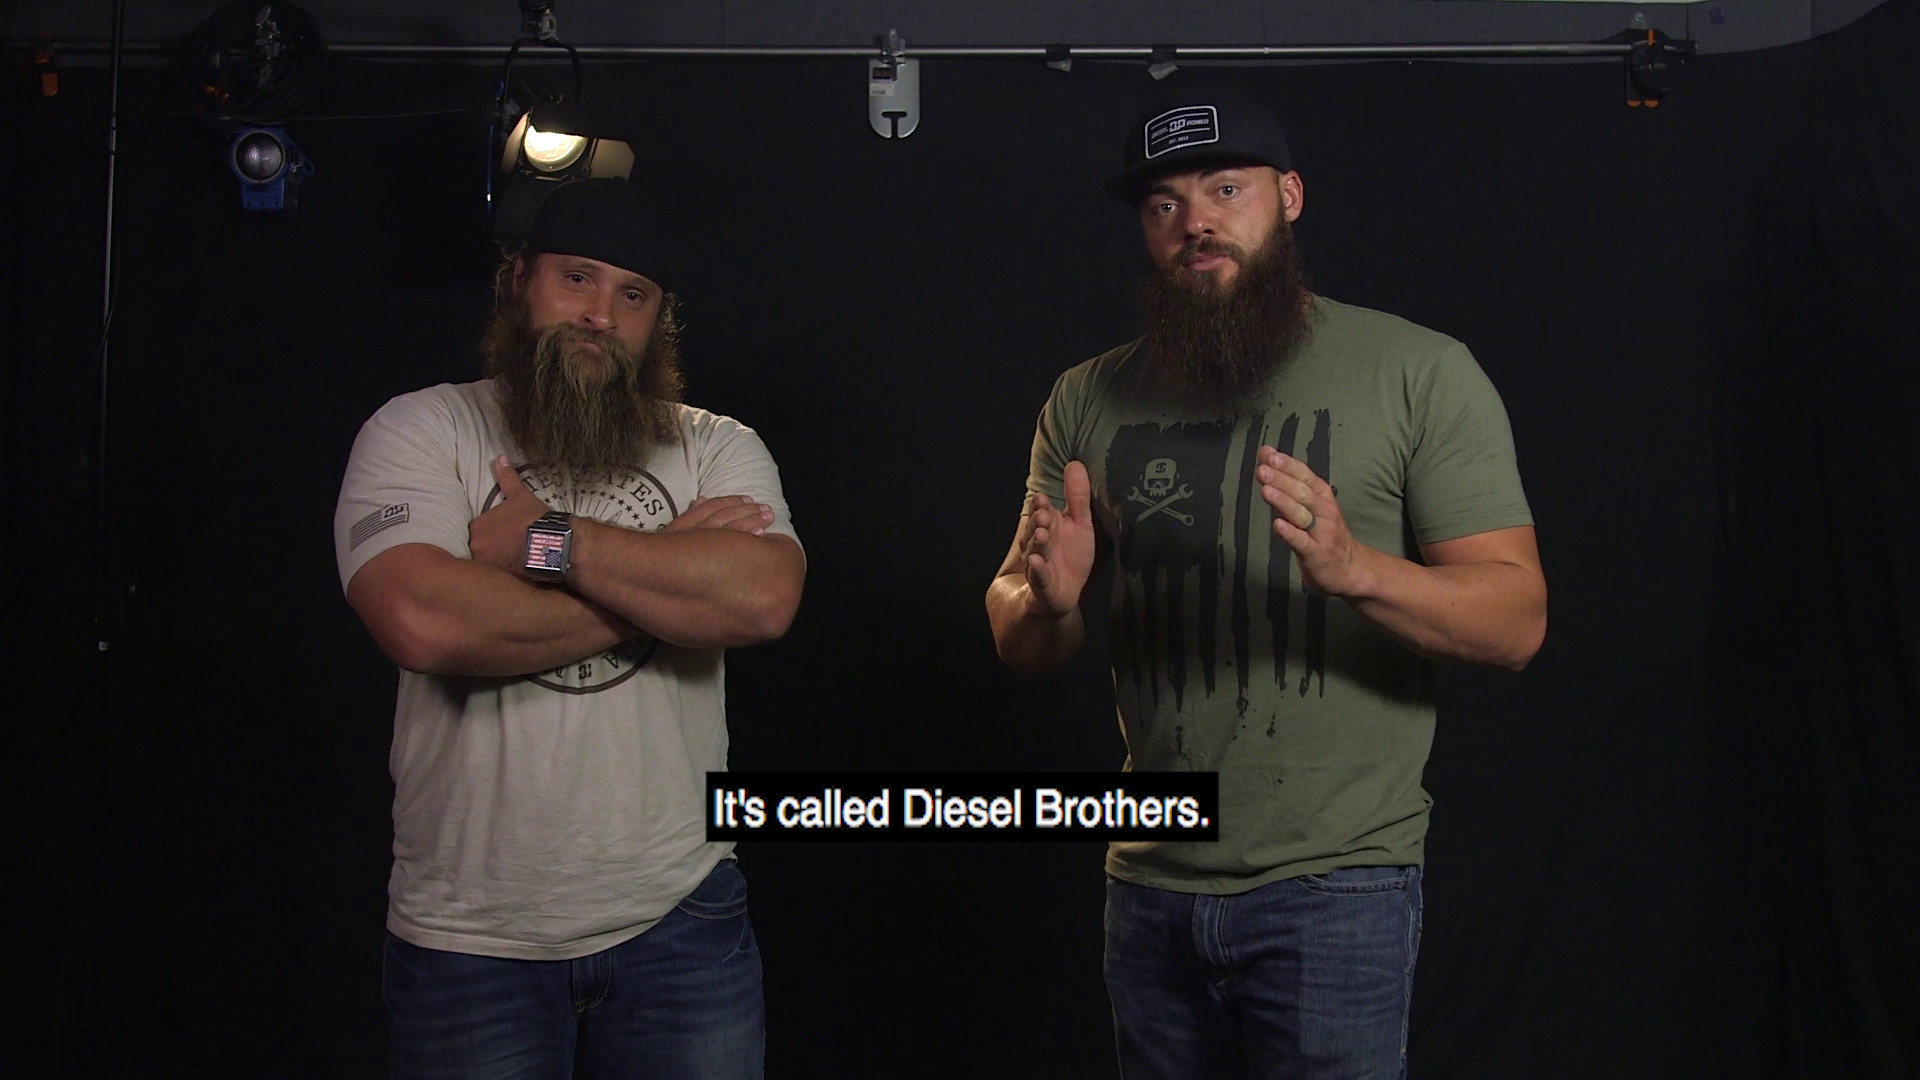 The One Weird Tip You WON'T Find in the Diesel Brothers Book